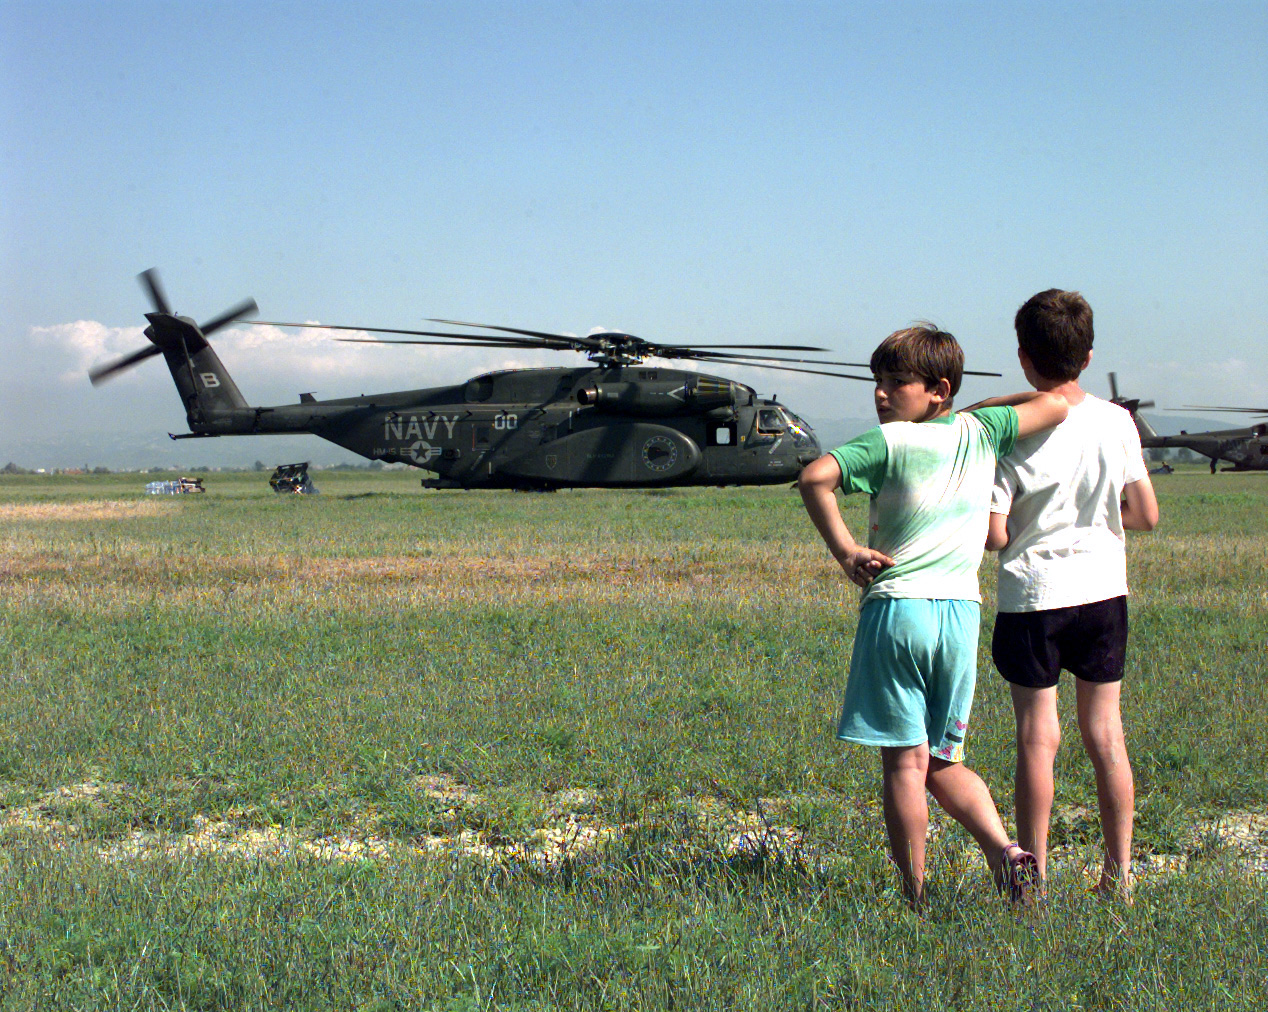 990513-F-5920L-001 	Two refugee children watch as relief supplies are unloaded from U.S. Navy MH-53E Sea Dragon helicopters at Camp Hope near Fier, Albania, on May 13, 1999, during Operation Sustain Hope.  Sustain Hope is the U.S. effort to bring in food, water, medicine, relief supplies, and to establish camps for the refugees fleeing from the Former Republic of Yugoslavia.  The Department of Defense has constructed Camp Hope to house up to 20,000 refugees.  The Sea Dragons are airlifting in supplies from the USS Inchon (MCS 12) which is operating in the Adriatic Sea.  DoD photo by Senior Airman Michelle Leonard, U.S. Air Force.  (Released)